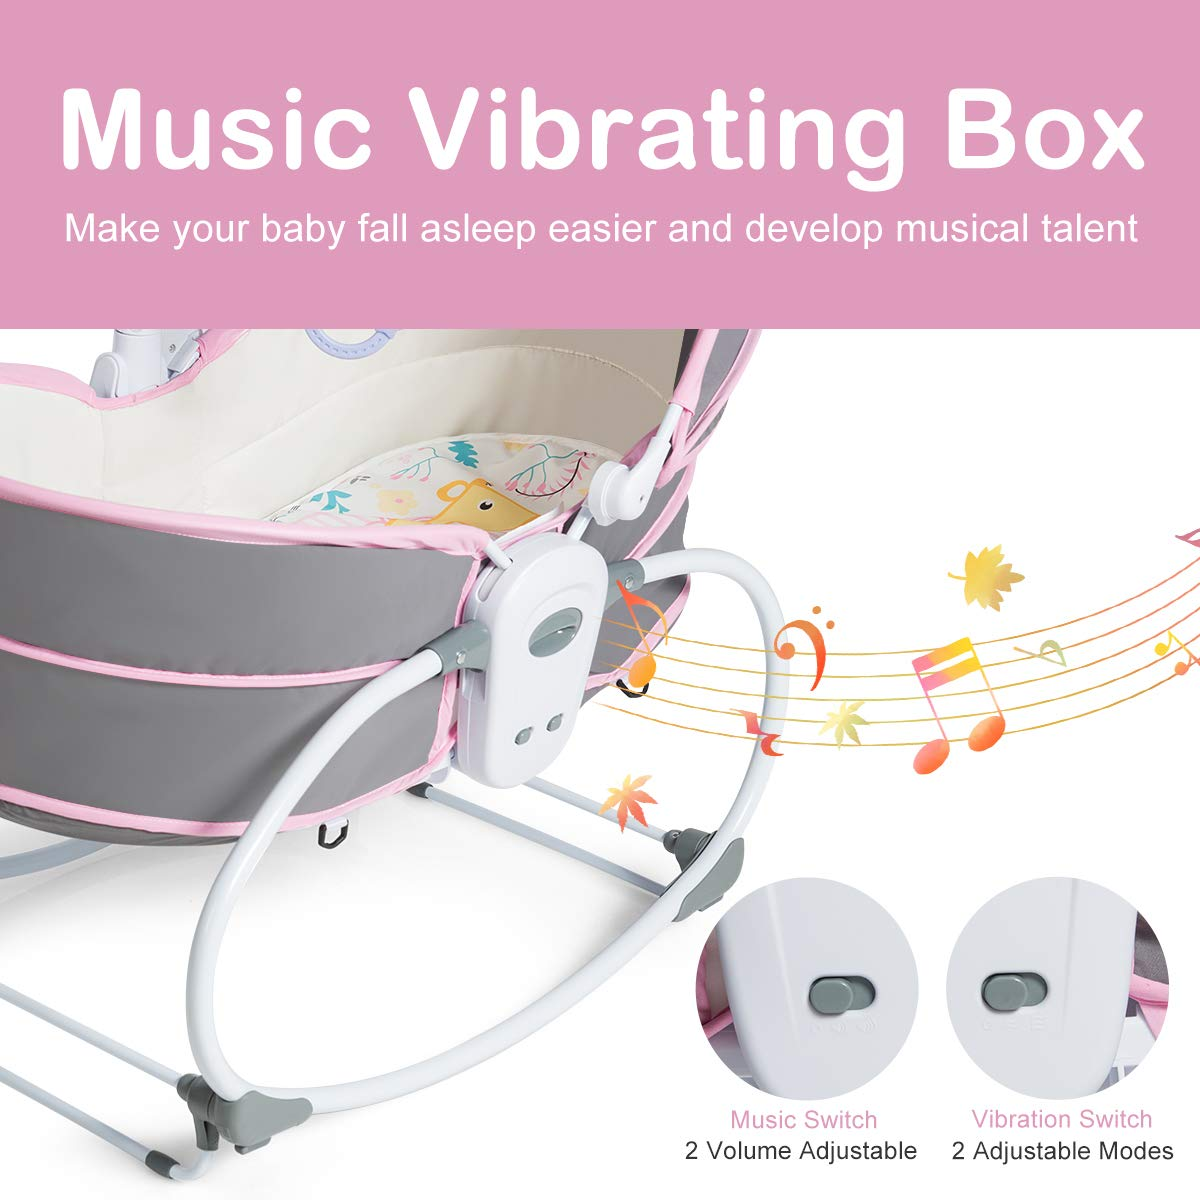 Multi-Functional Crib for Newborn Pink Portable Infant Travel Bed with Music and Toys HONEY JOY 5-in-1 Baby Rocking Bassinet Adjustable and Detachable Canopy